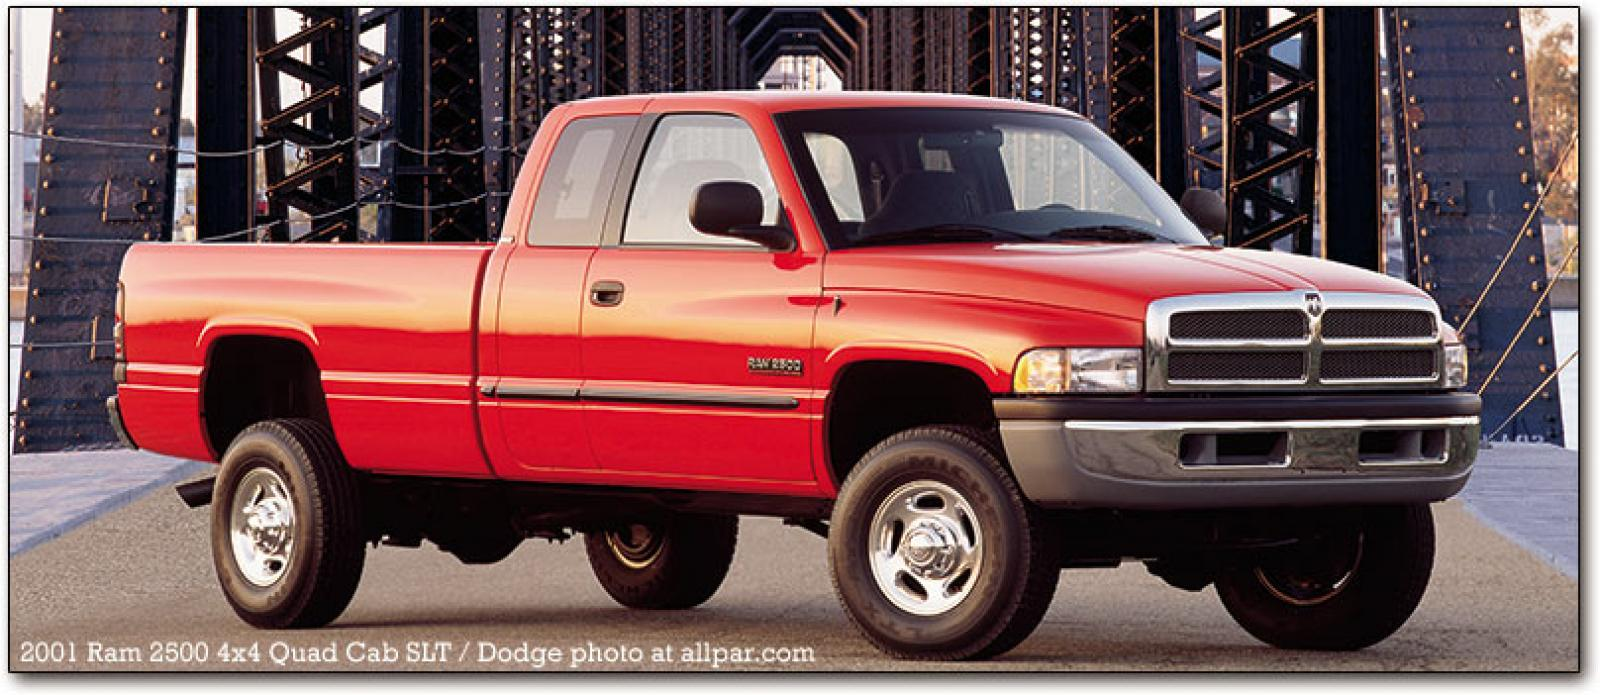 hight resolution of  2000 dodge ram pickup 2500 6 2000 dodge ram pickup 2500 information and photos zombiedrive dodge